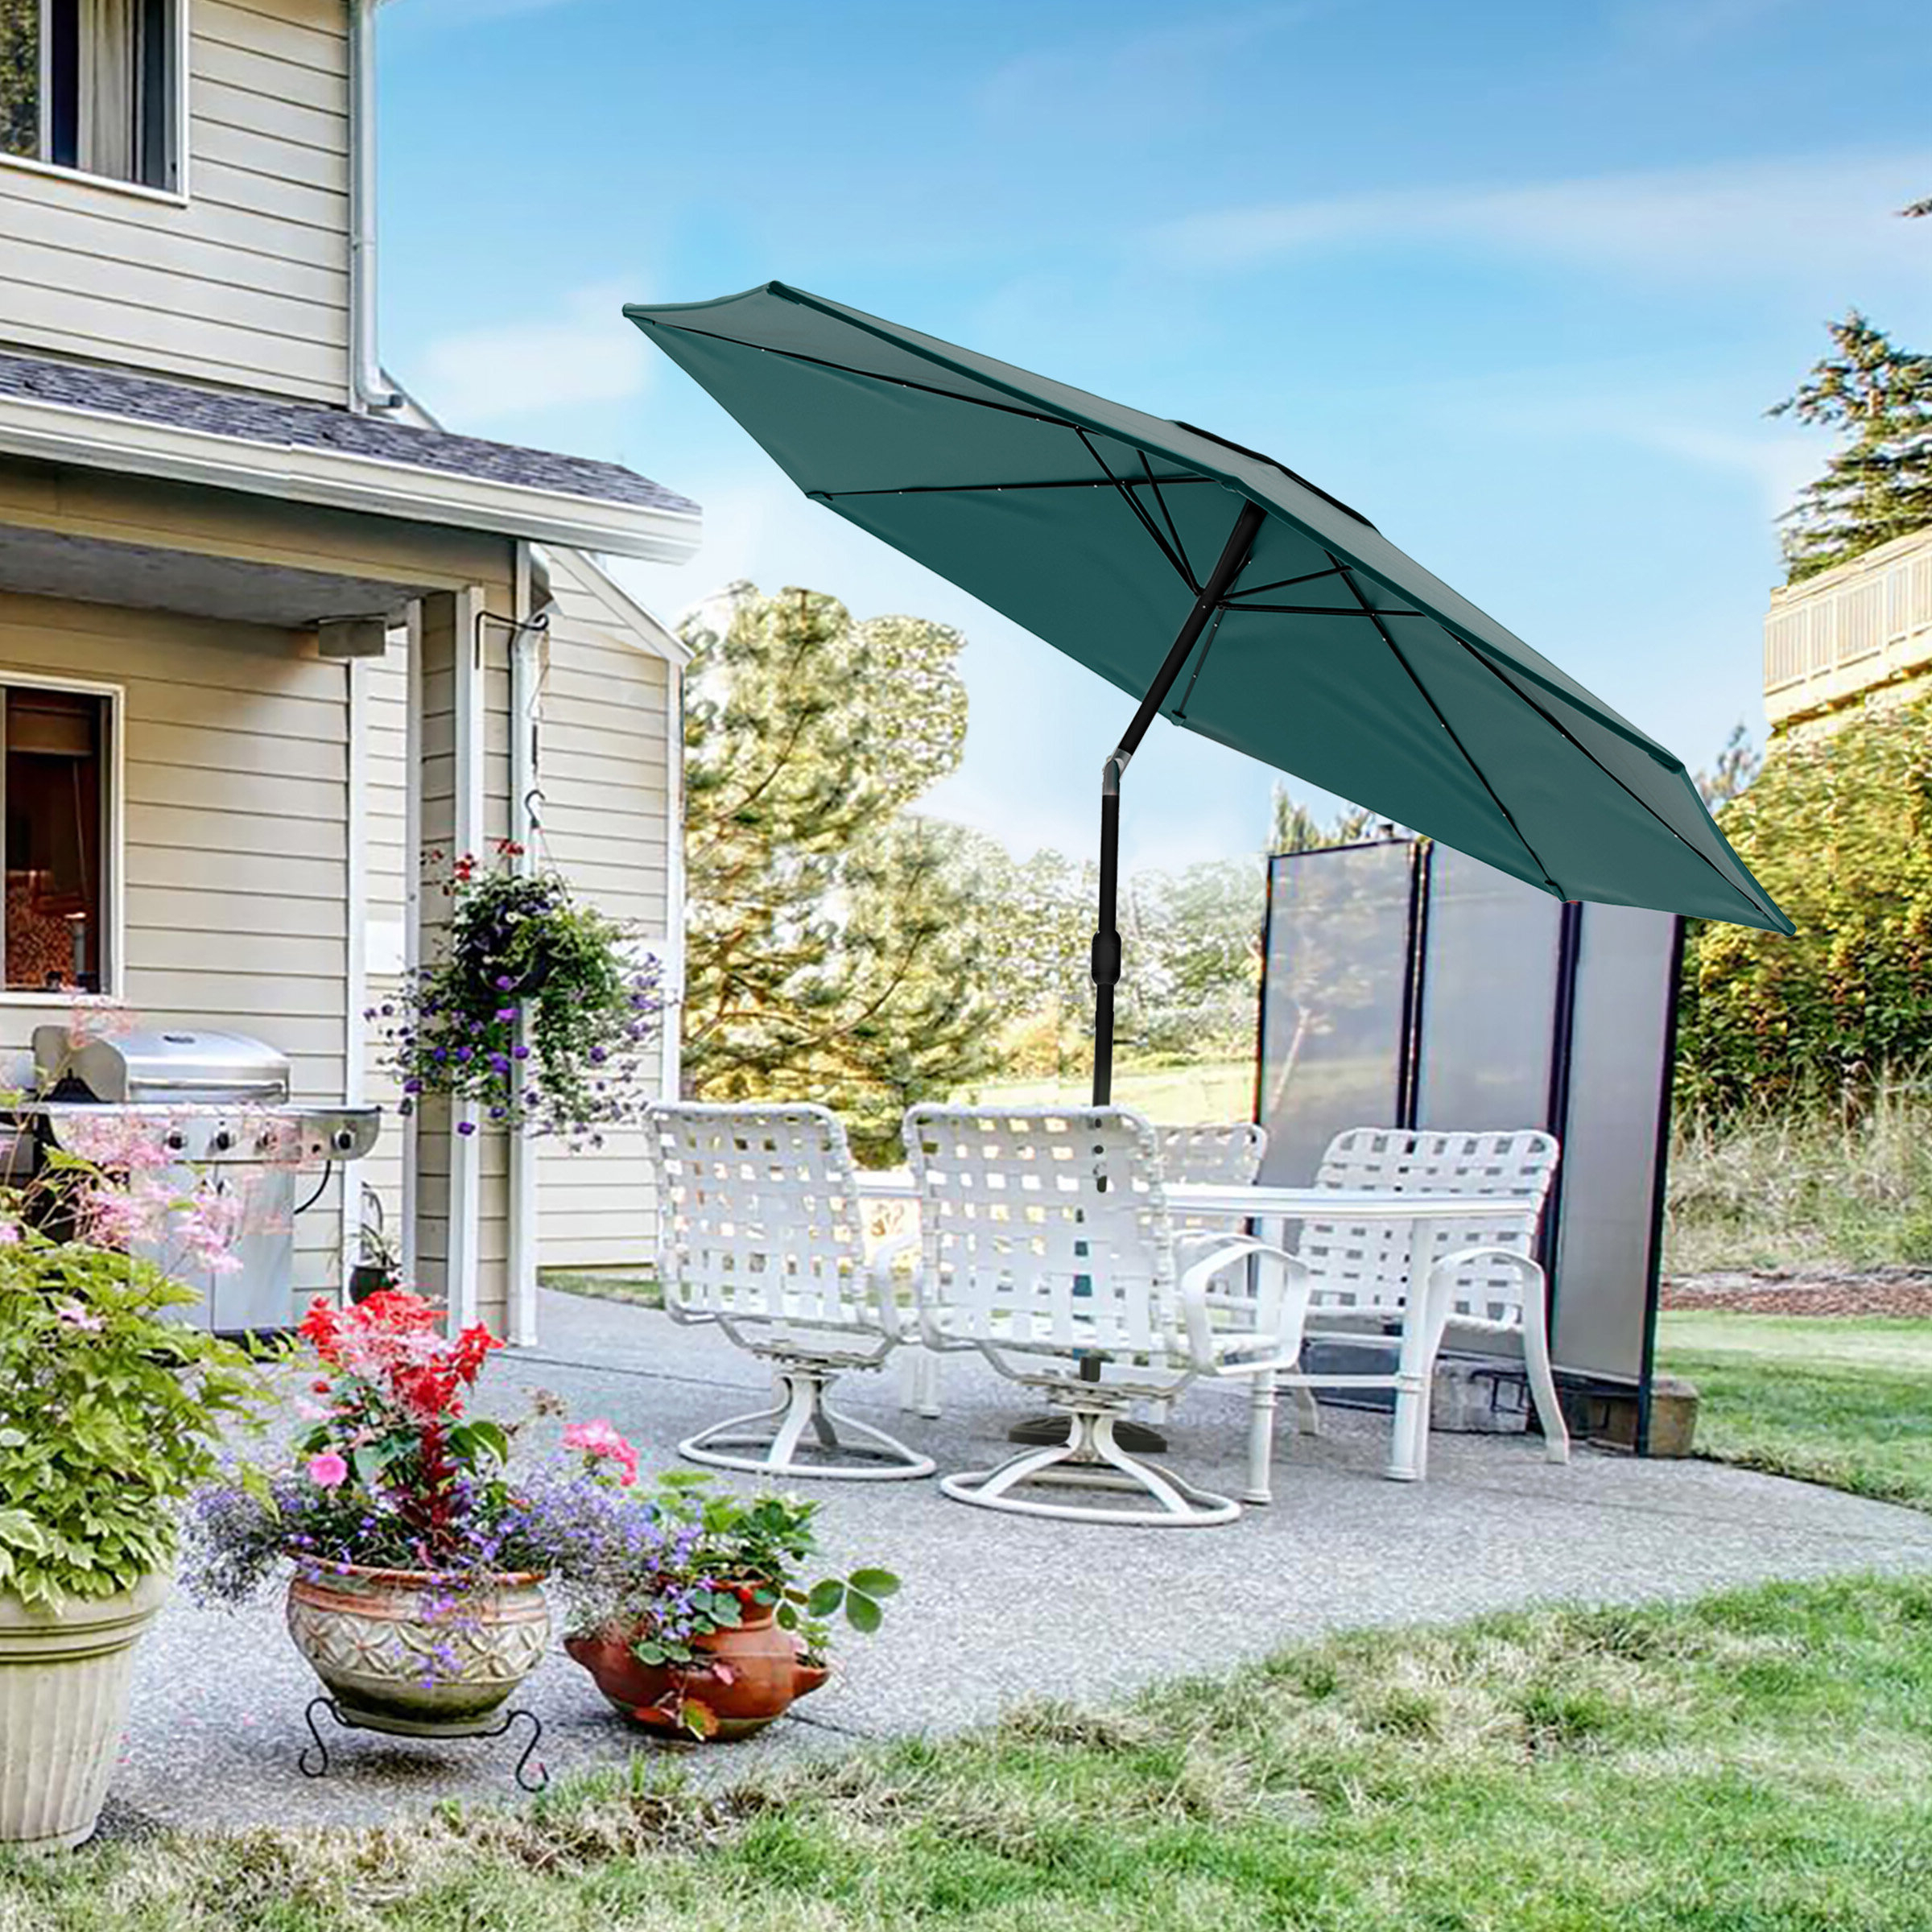 Newest Solar Powered Led Patio Umbrella With Bricelyn Market Umbrellas (View 16 of 20)